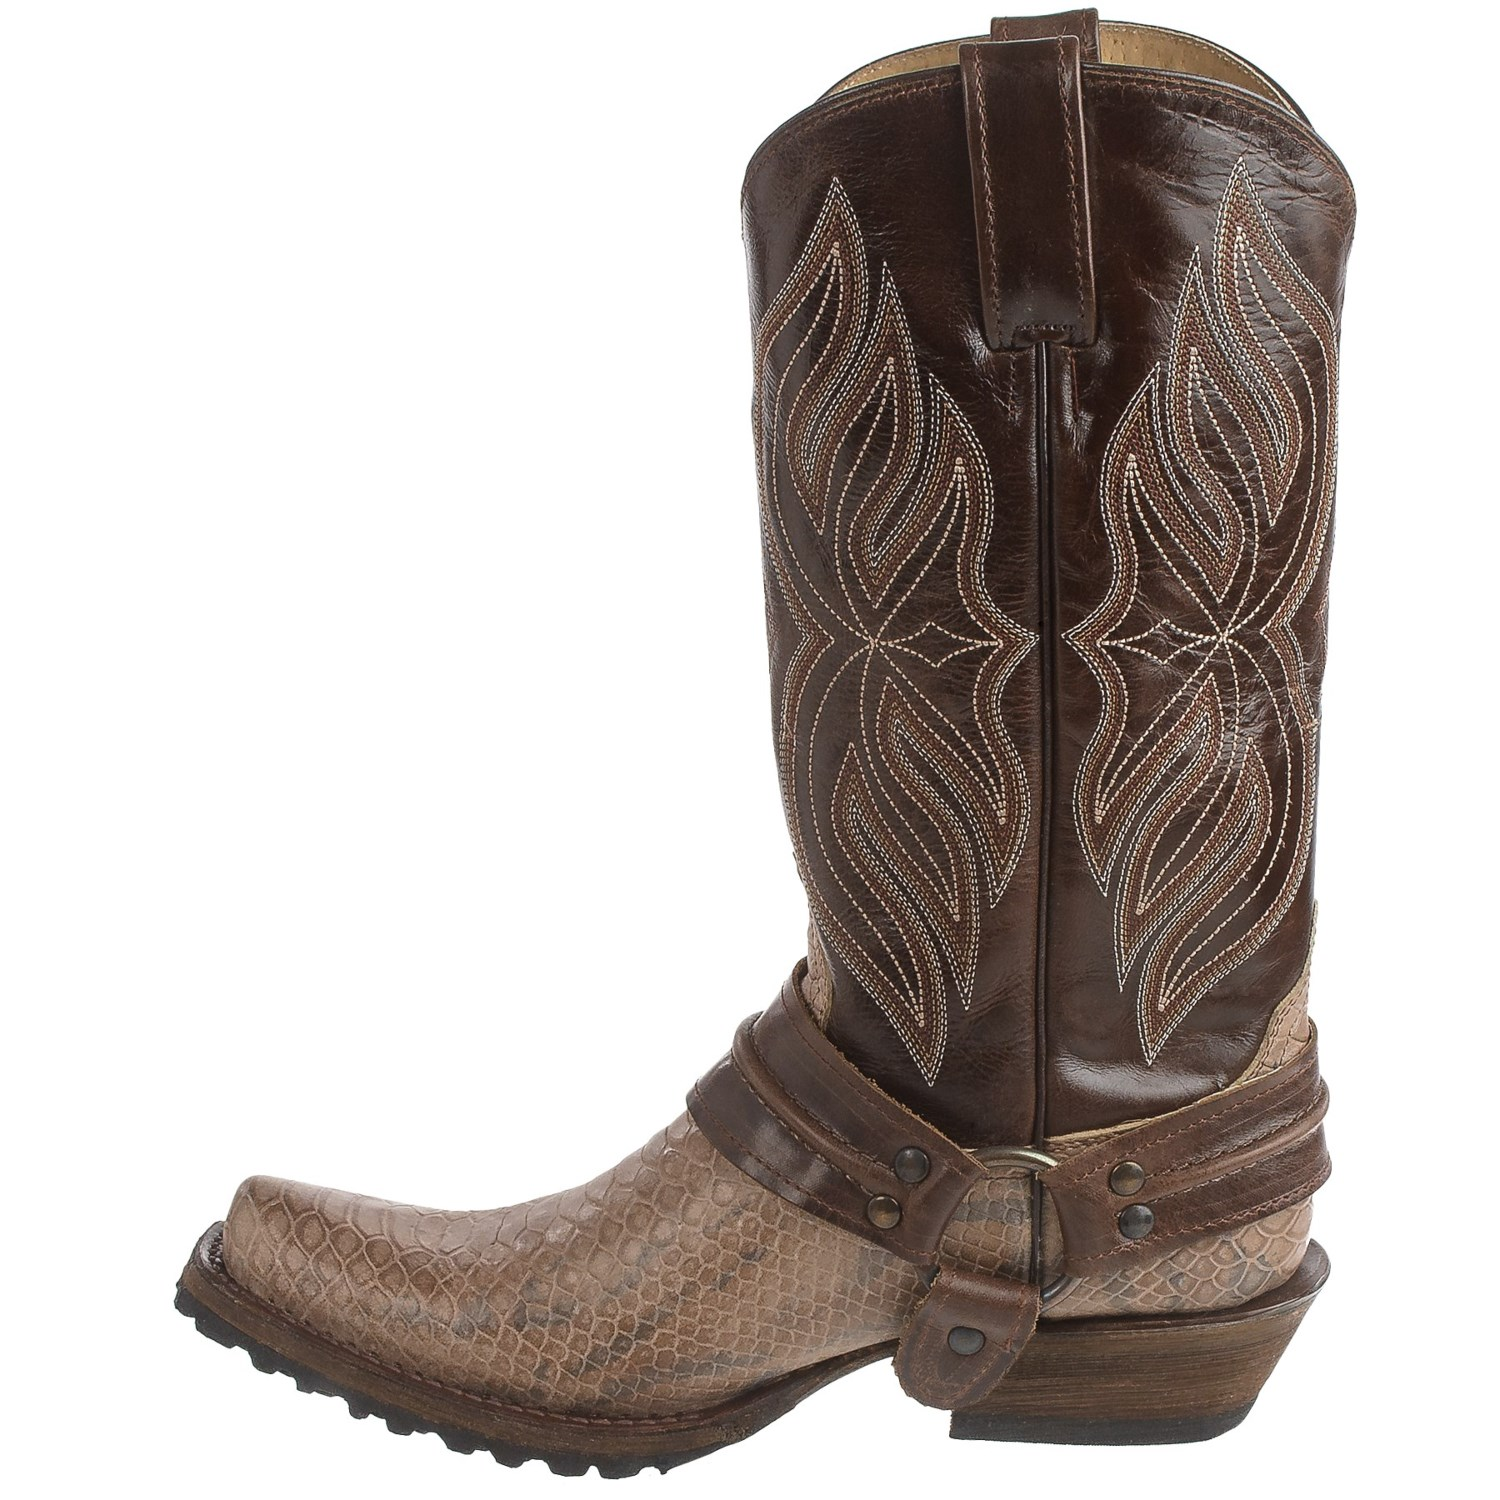 Roper Bandit Toe Harness Cowboy Boots (For Men) - Save 39%